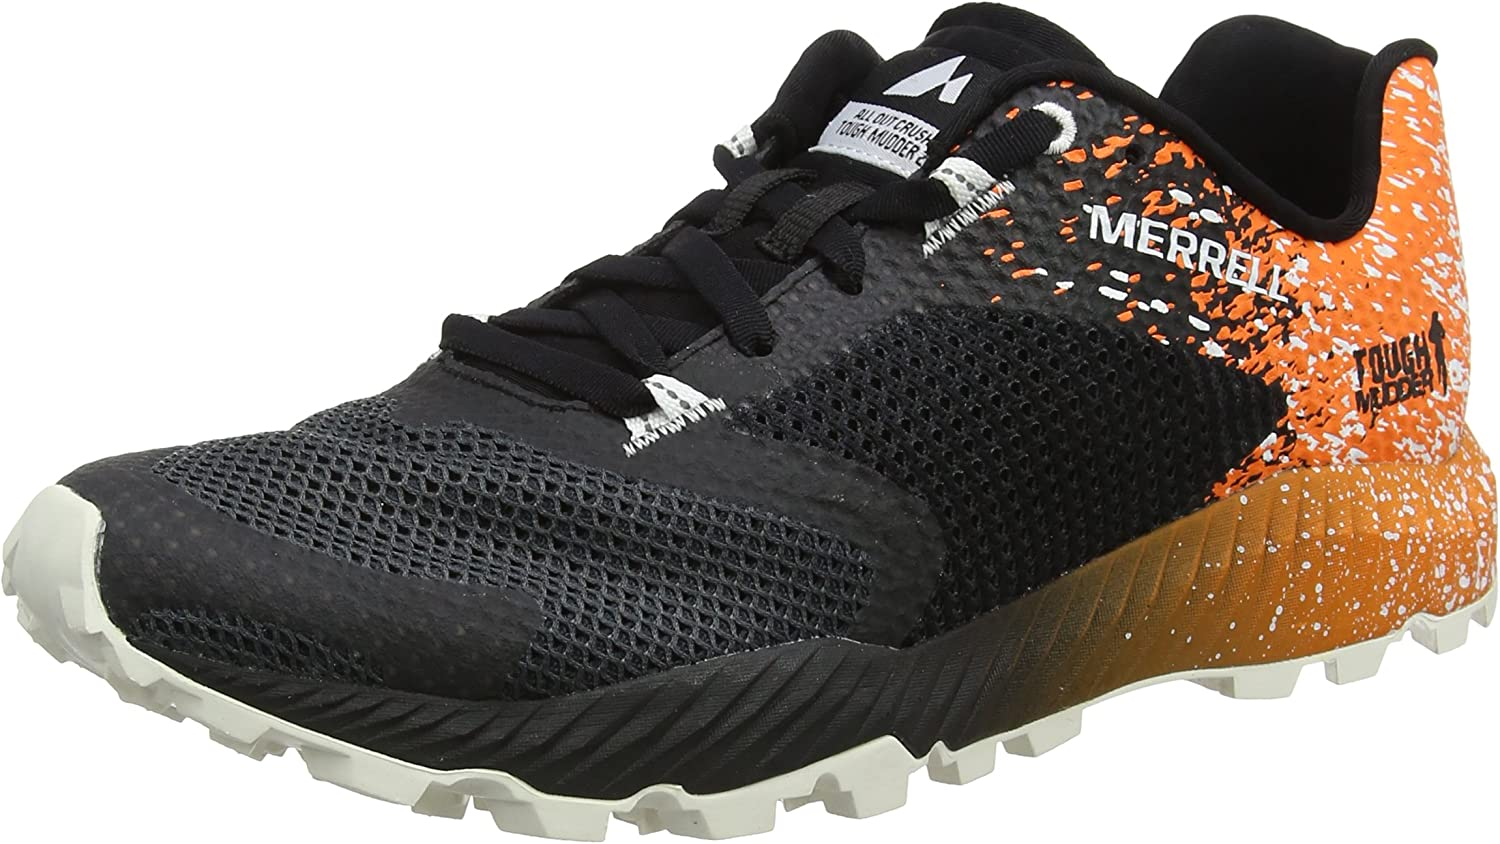 Merrell Men's All Out All Out Crush Tough Mudder 2 shoes